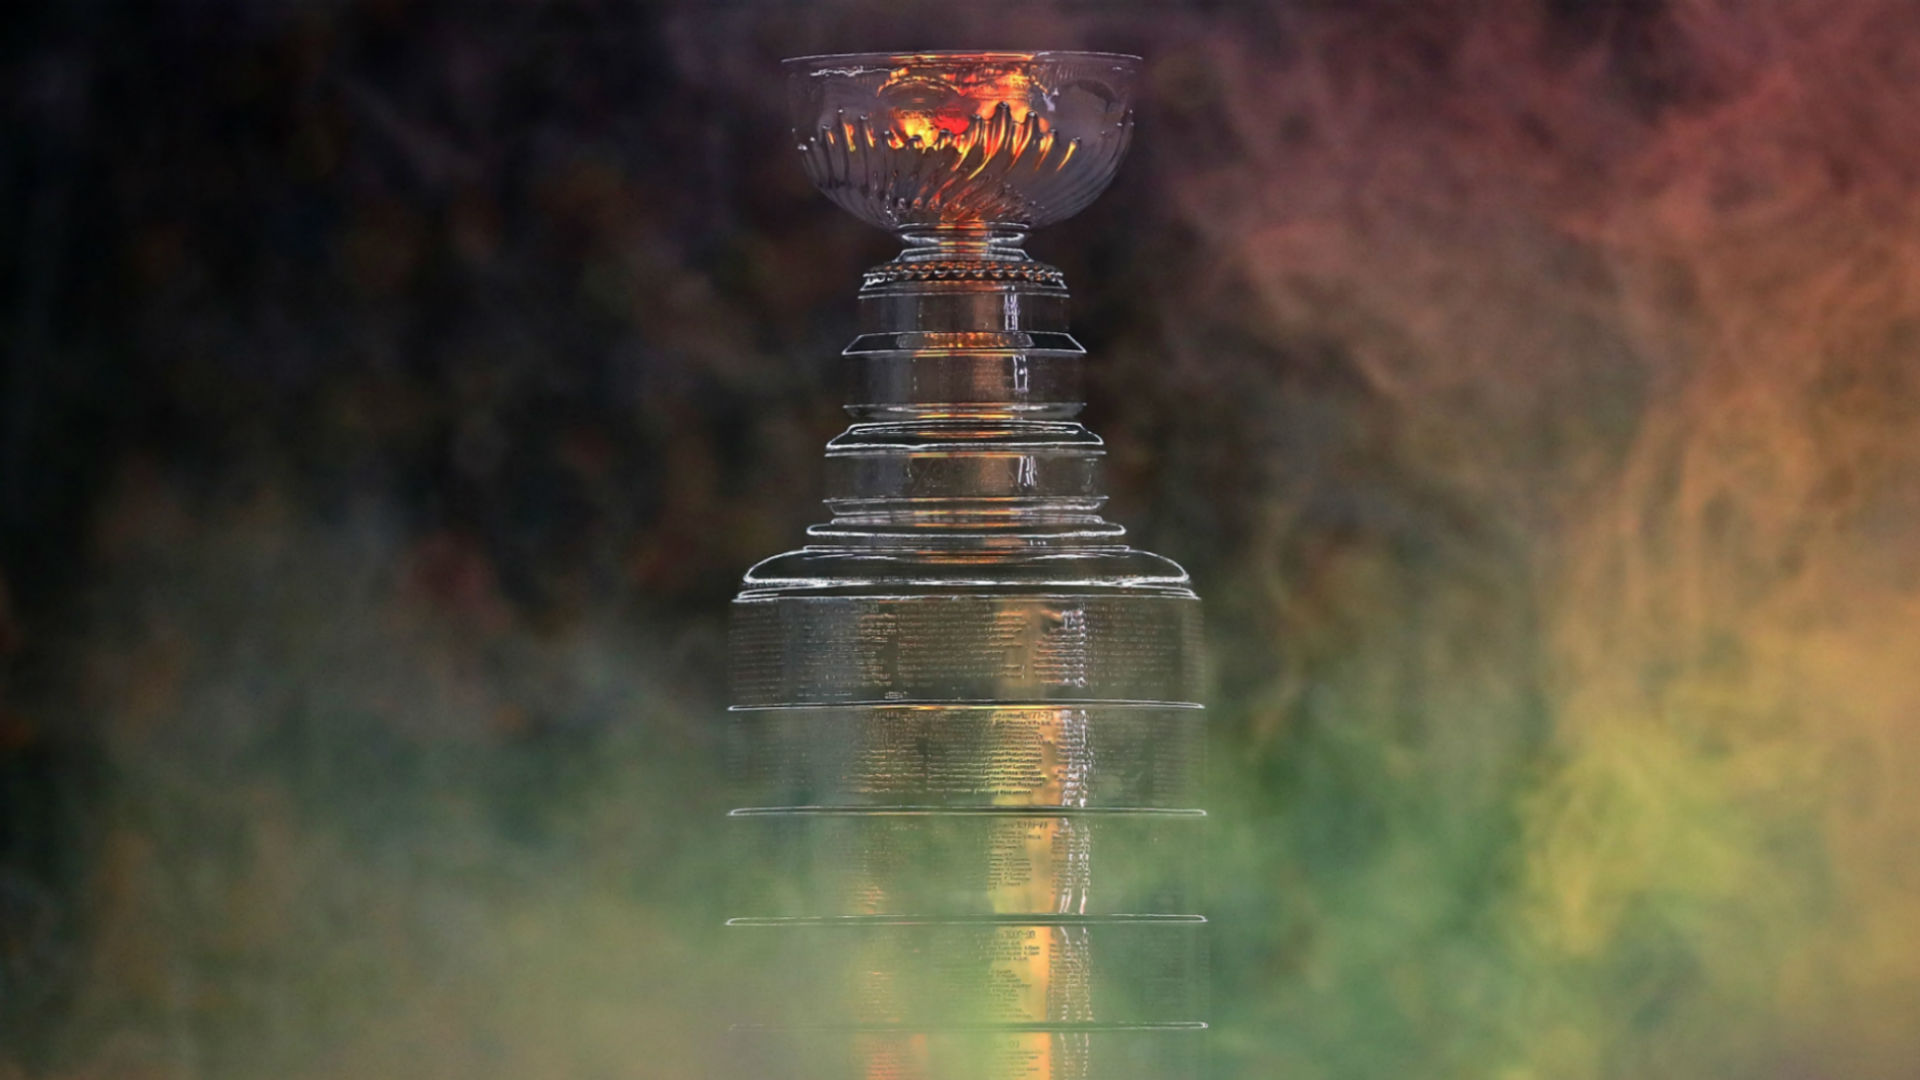 Stanley cup finals dates in Sydney